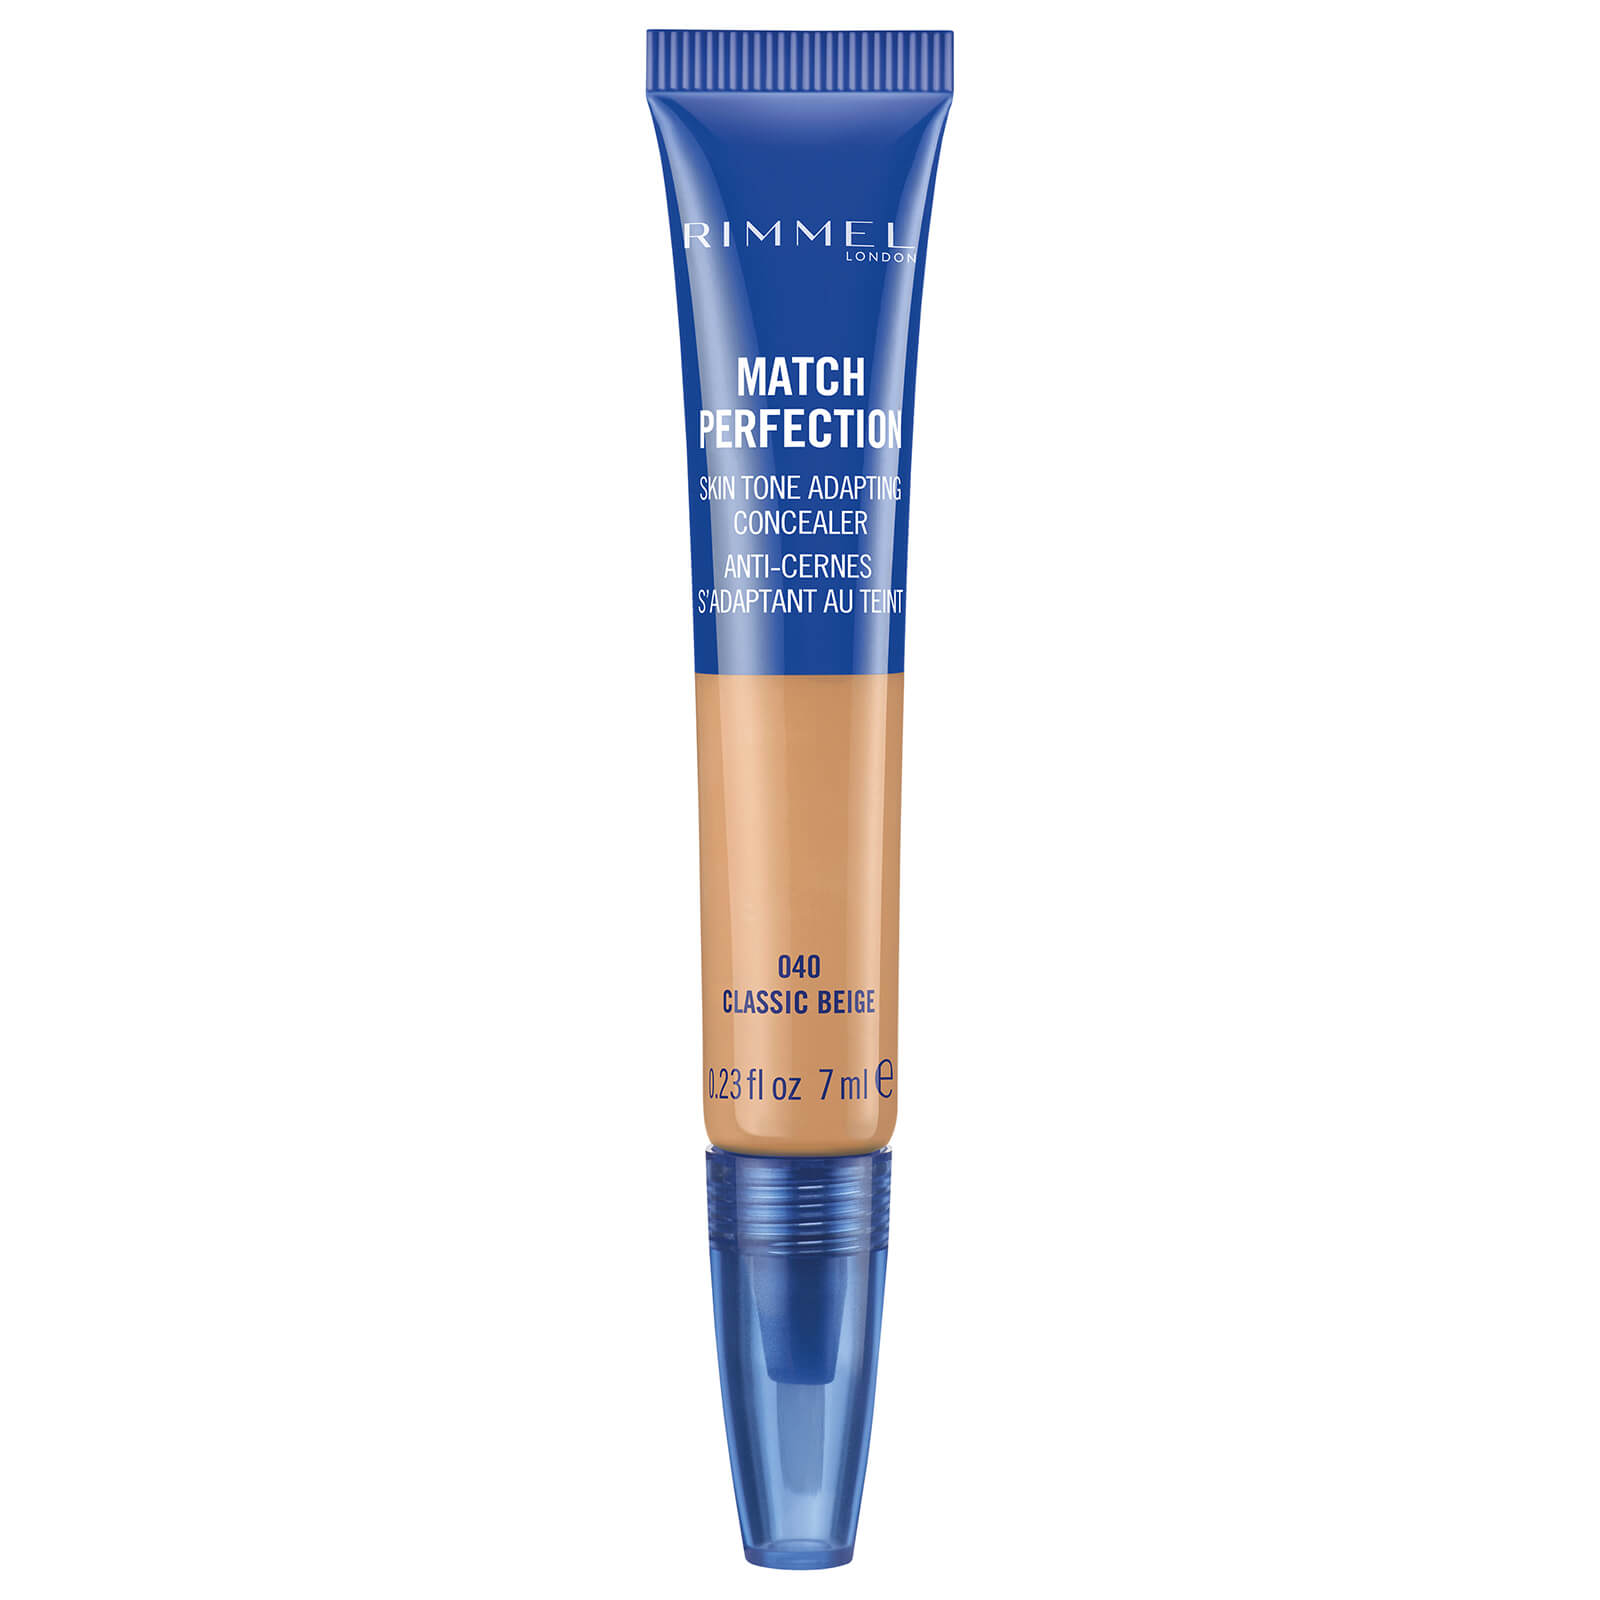 rimmel match perfection concealer 7ml (various shades) - classic beige